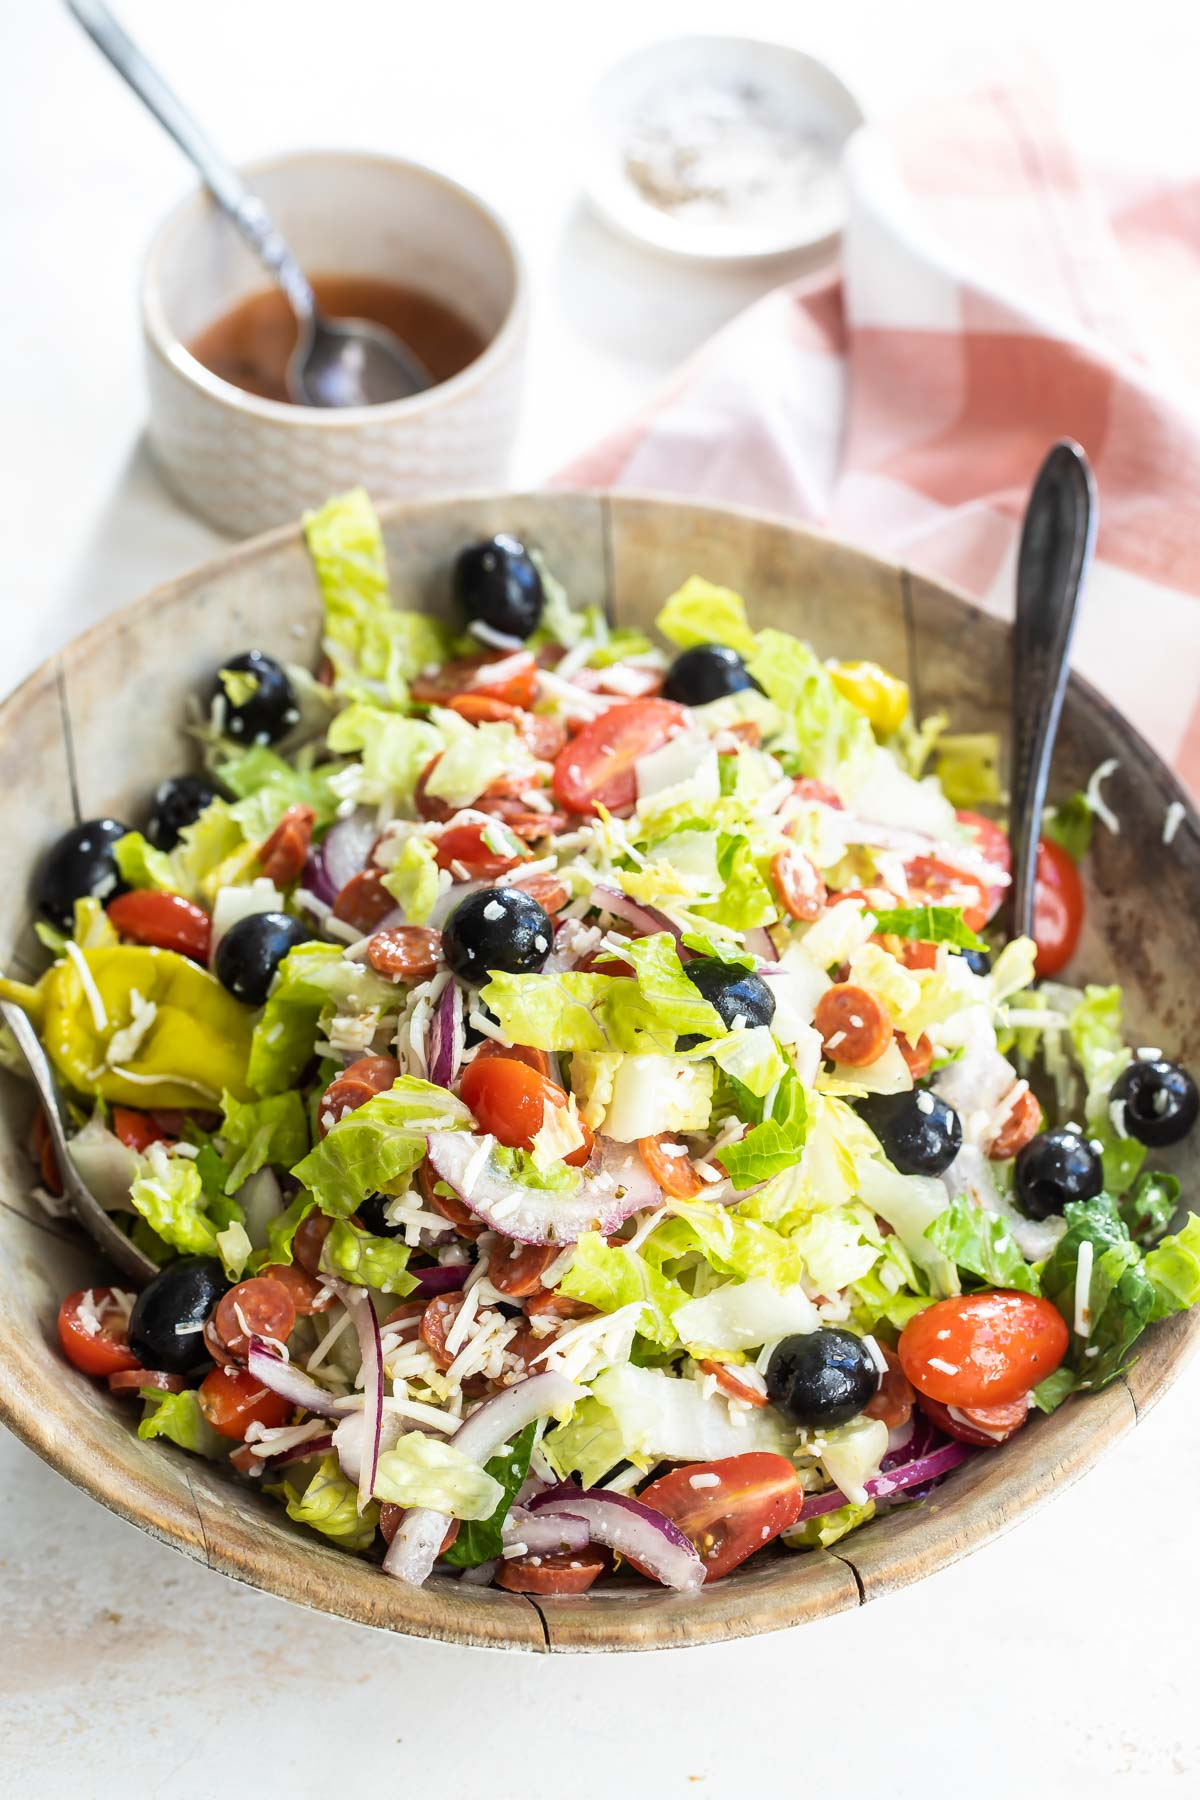 Antipasto salad mixed in a wooden bowl.